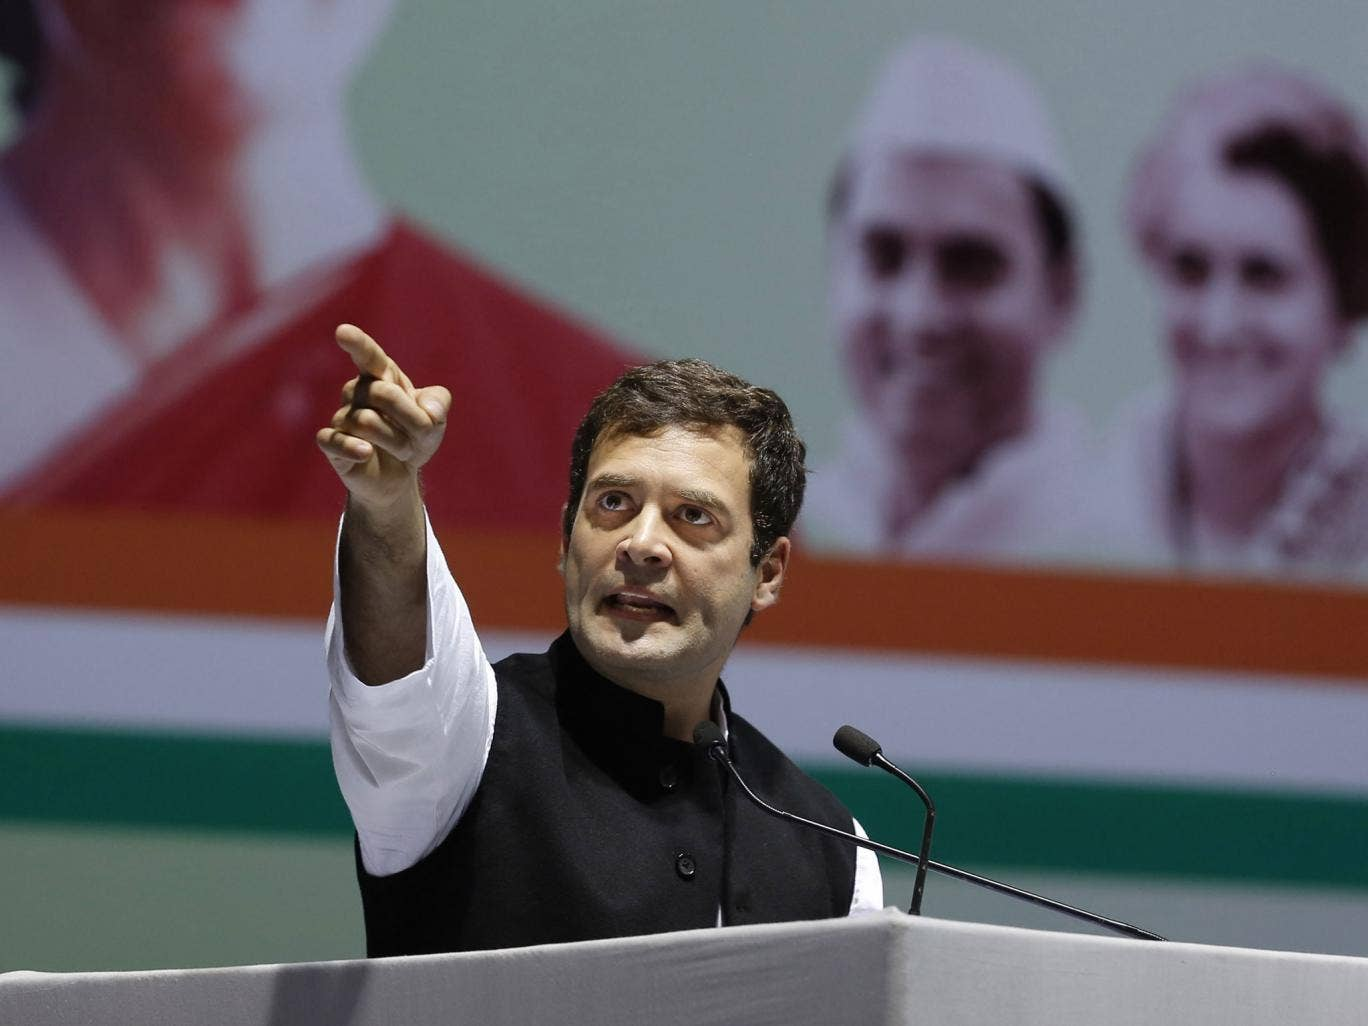 Rahul Gandhi has described himself as a warrior 'ready to go into battle'